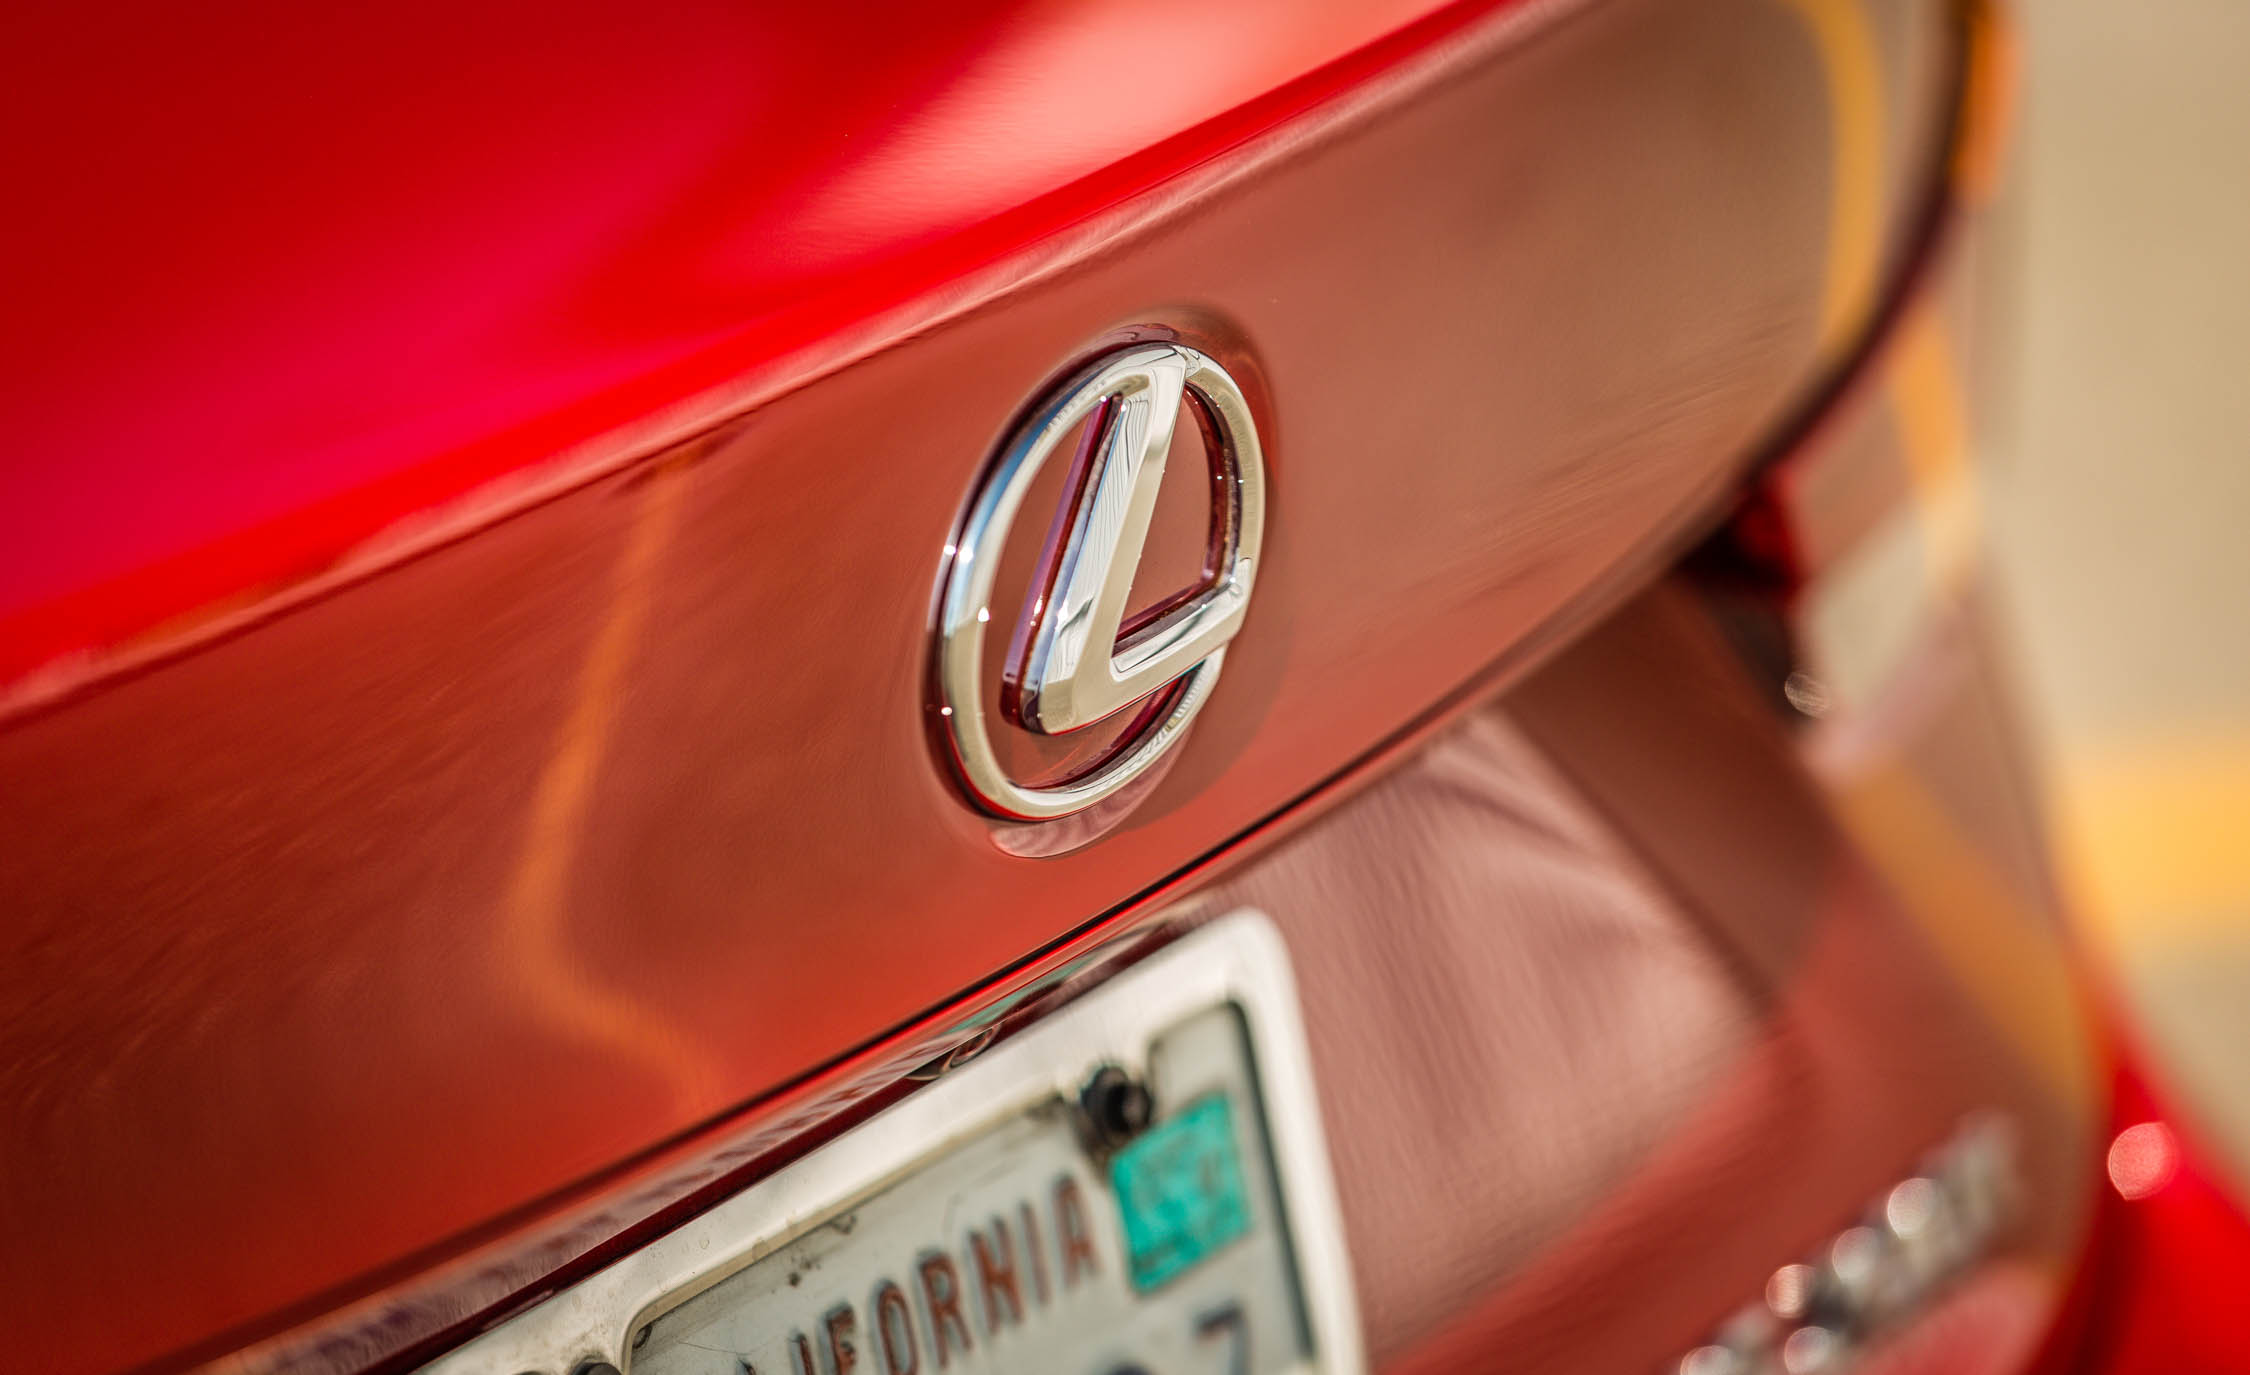 2017 Lexus IS 200t F Sport Red Exterior View Rear Badge Emblem (View 16 of 29)